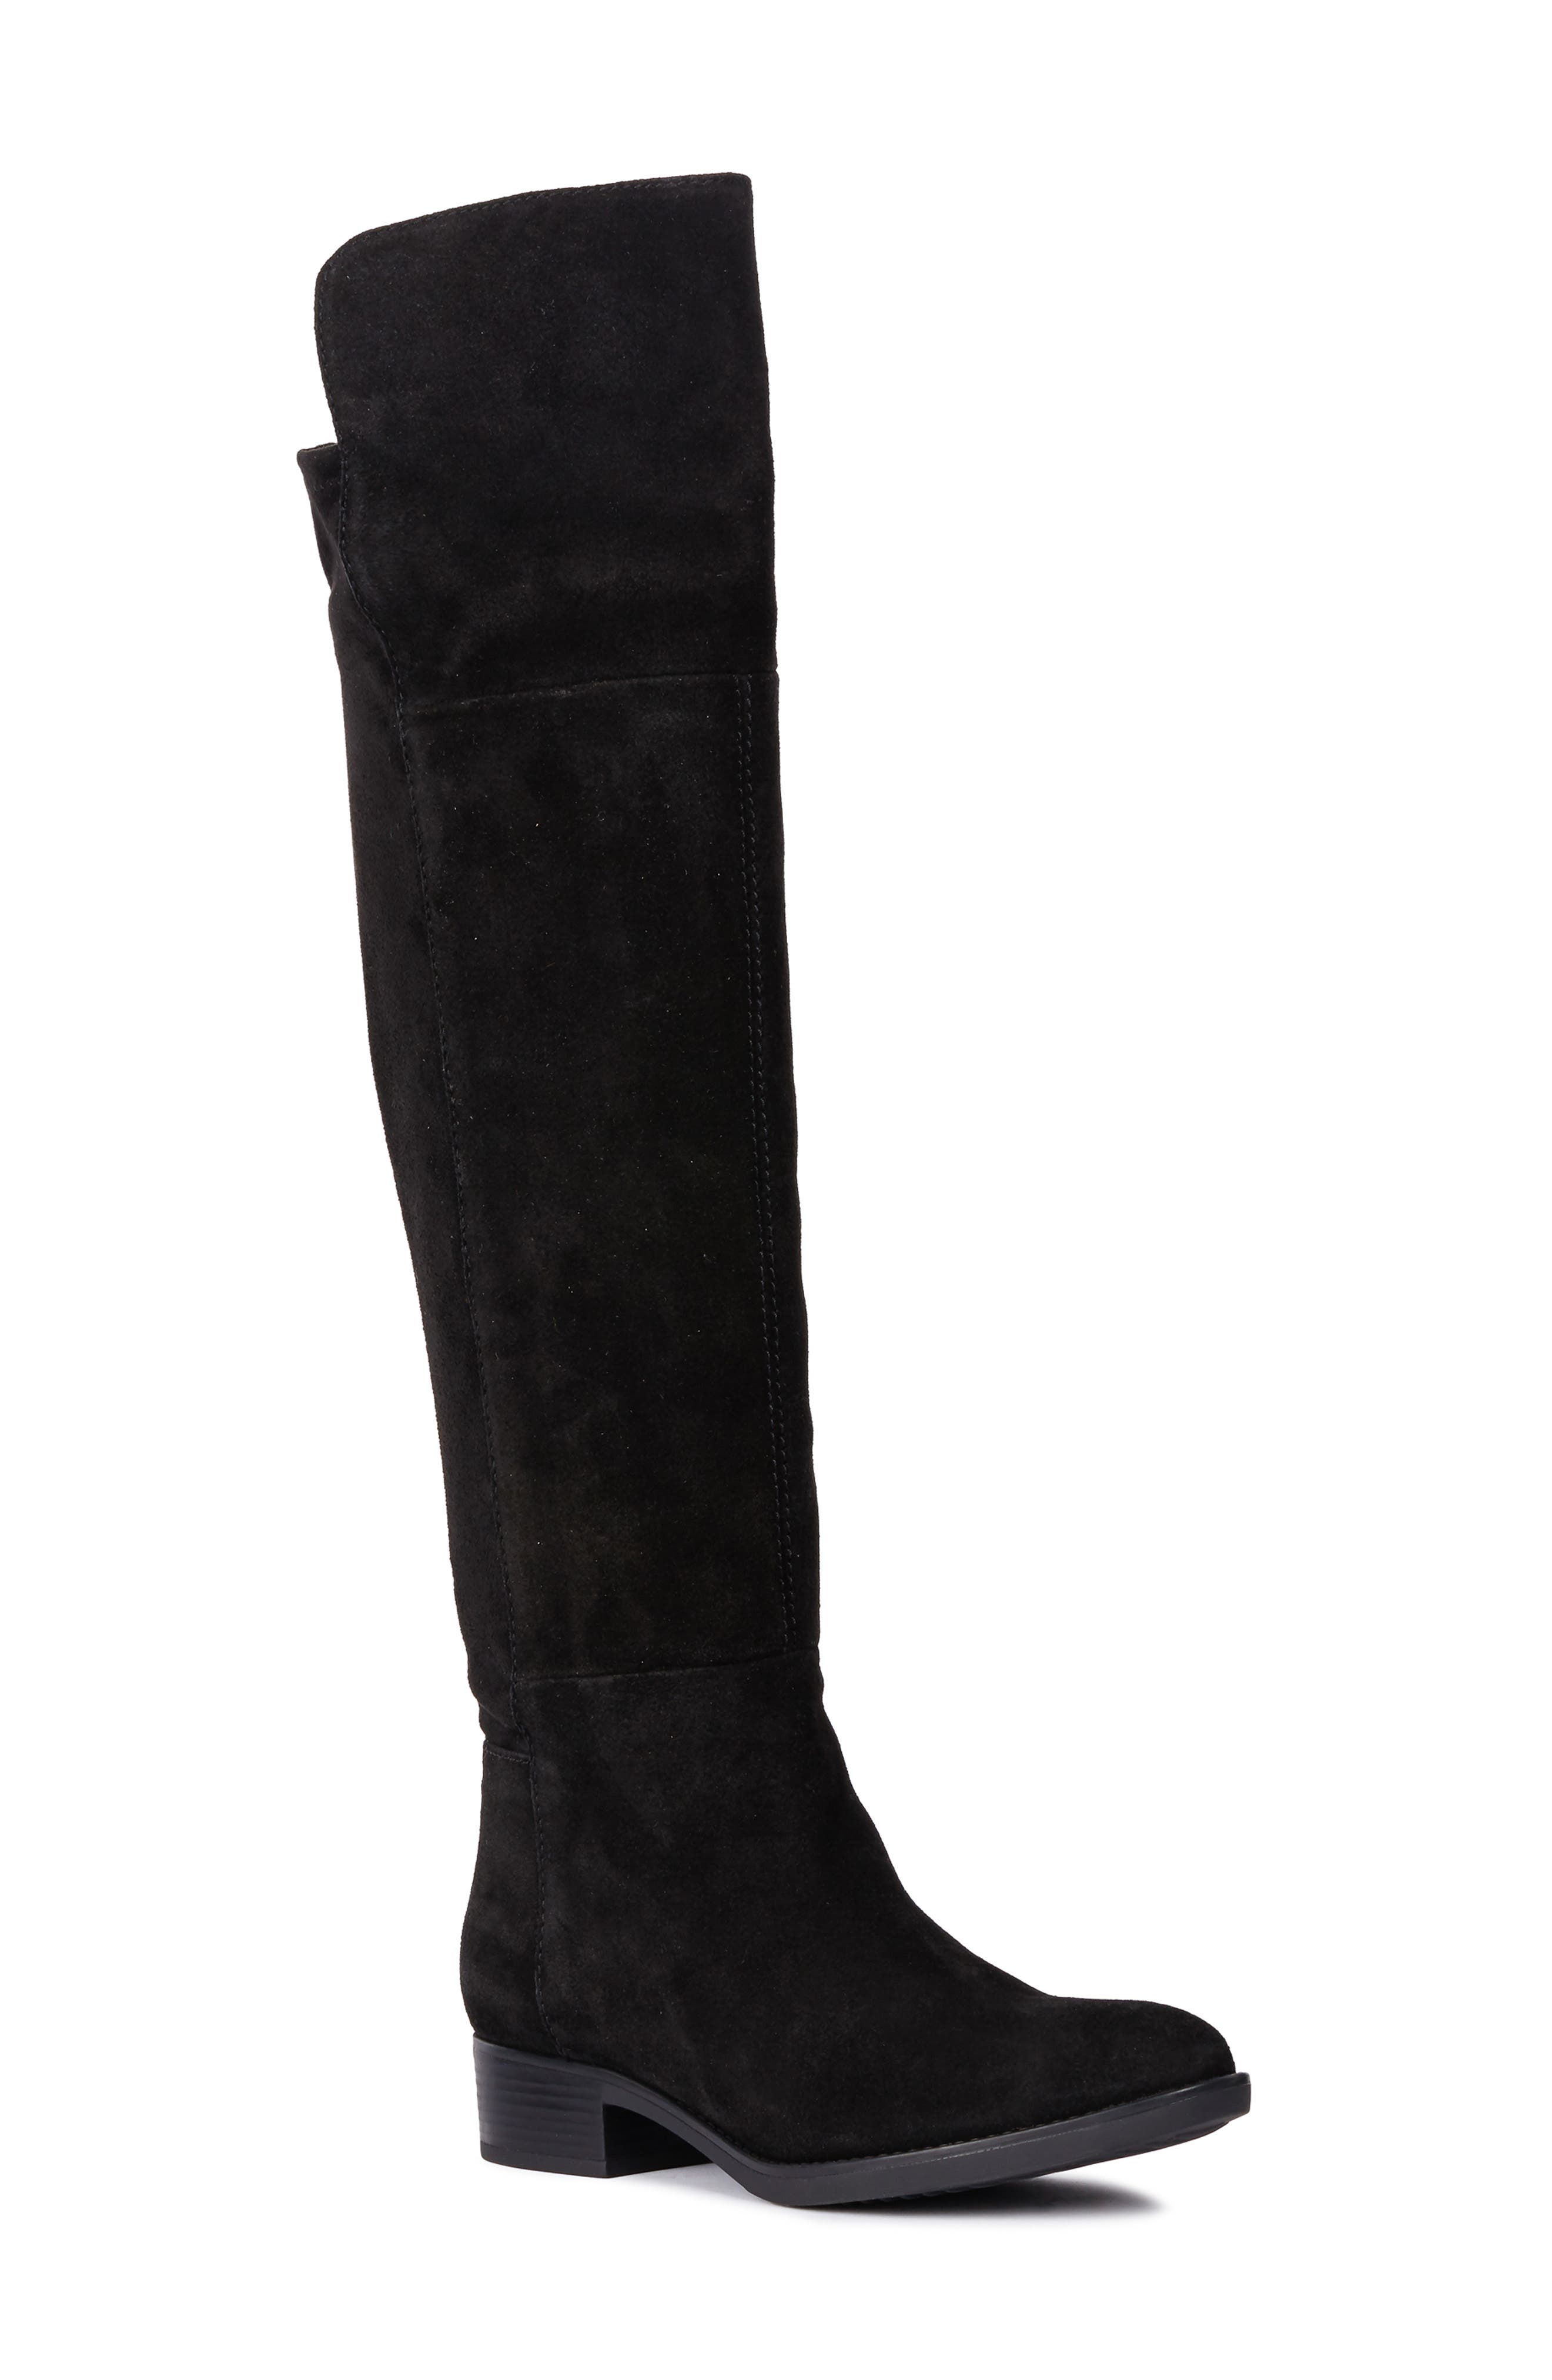 Felicity Knee High Boot,                         Main,                         color, BLACK SUEDE